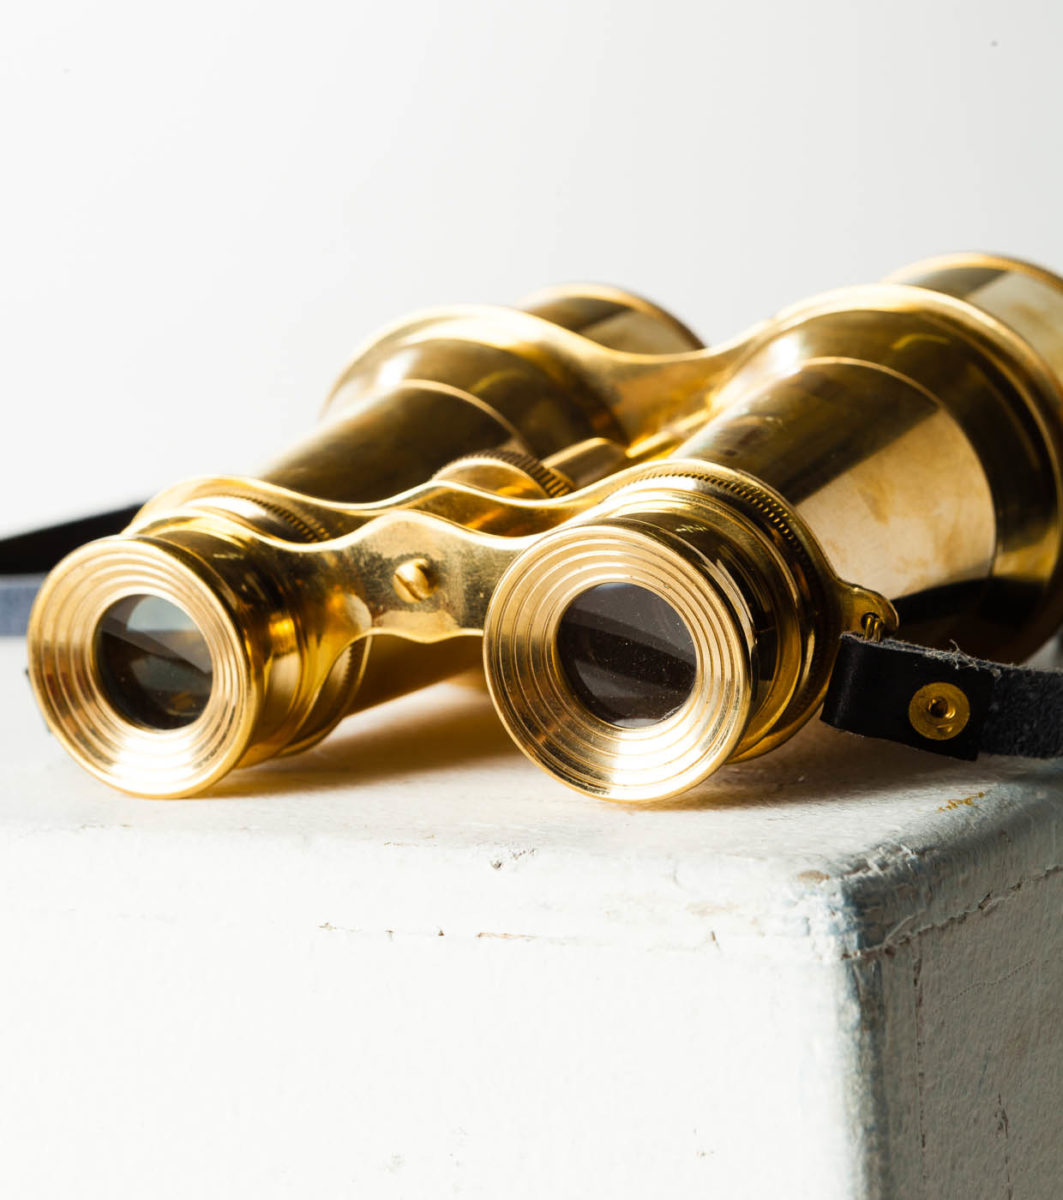 Alternate view 2 of Brass Binoculars